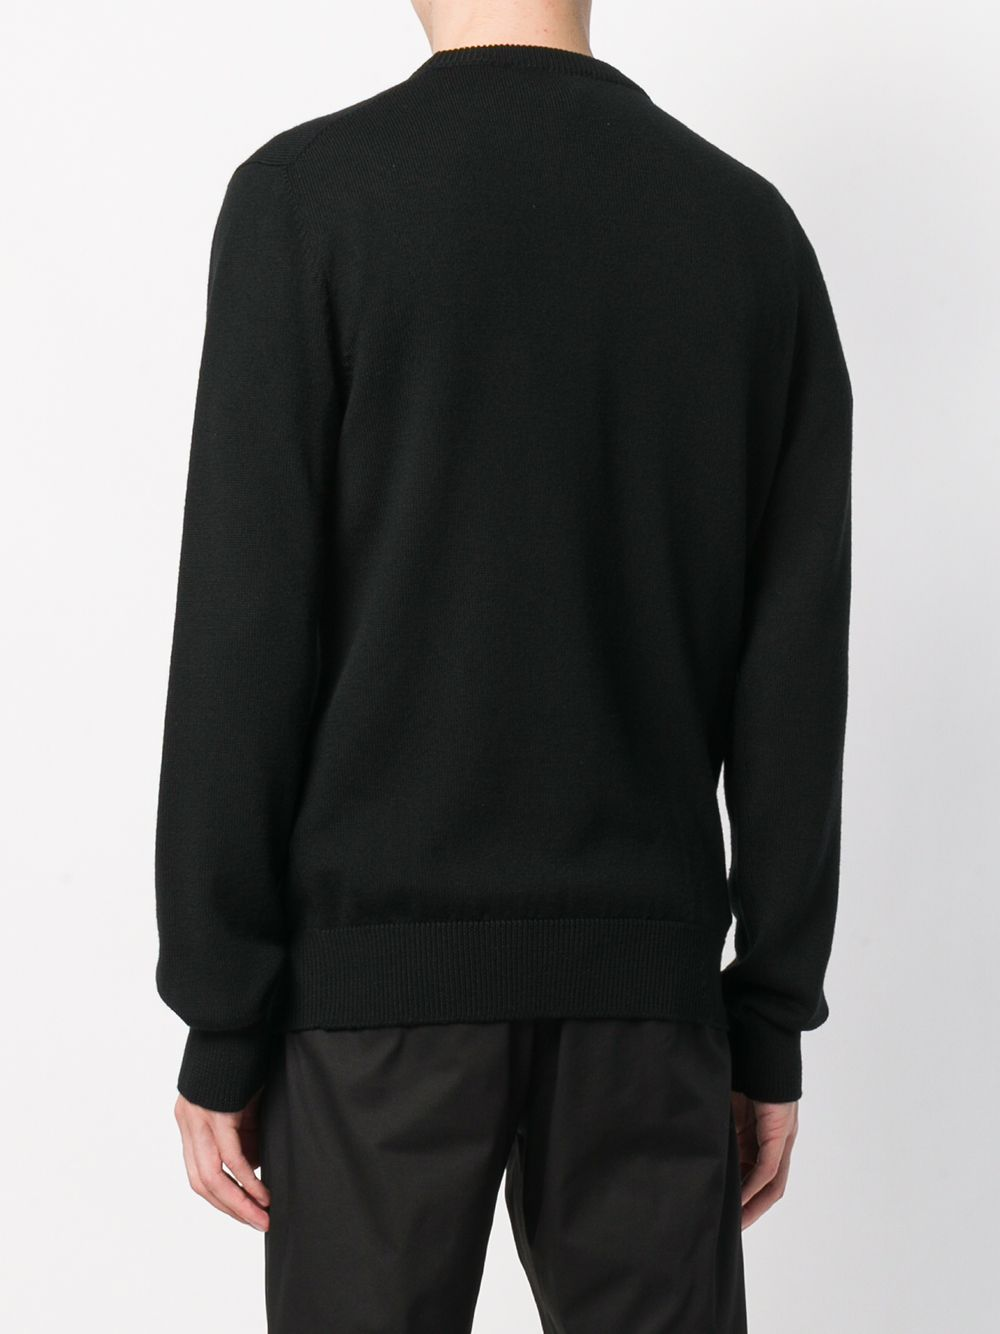 Dolce & Gabbana | embellished pullover sweatshirt | Clouty